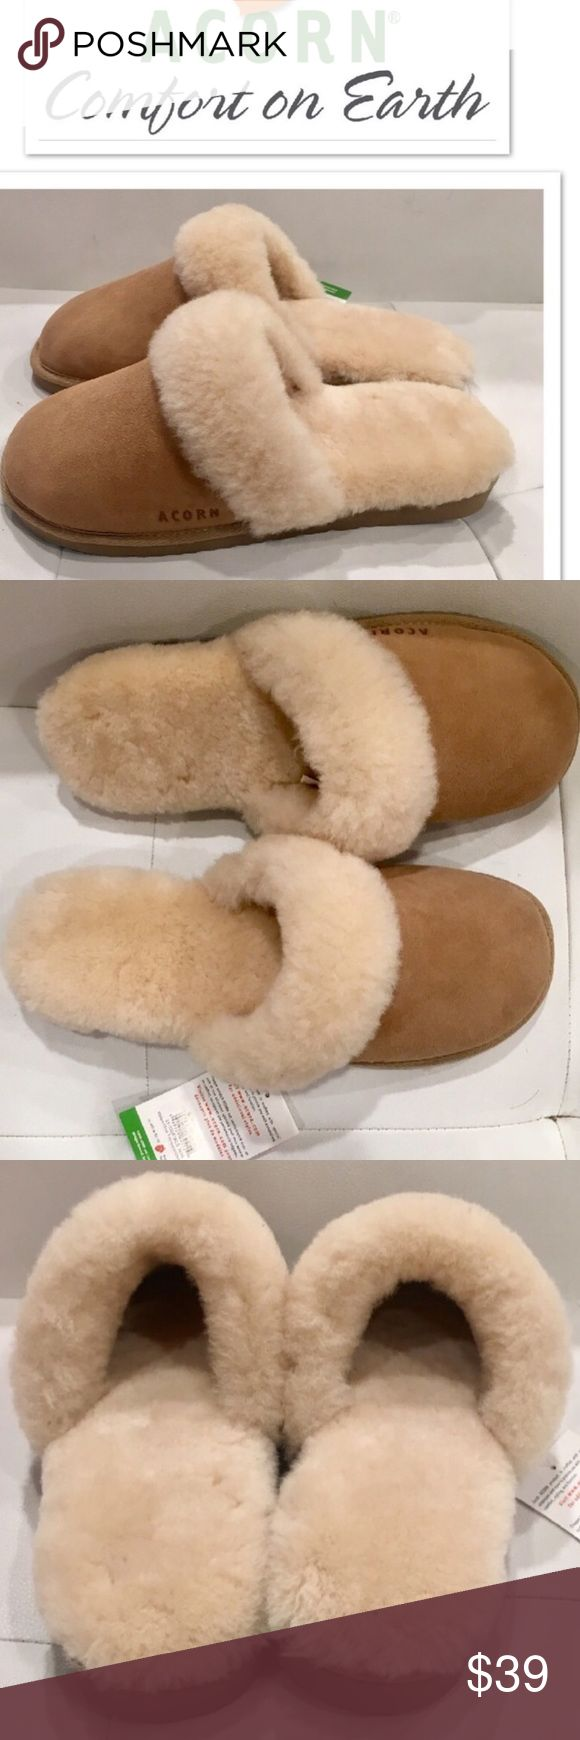 Acorn Sheepskin Slippers! NEW! Jen you wine suede and sheepskin slippers. Absolutely heavenly to wear. Brand-new with tags attached. Snap these up because they are a rare find on Poshmark! No trades or lowball offers please. Acorn Shoes Slippers